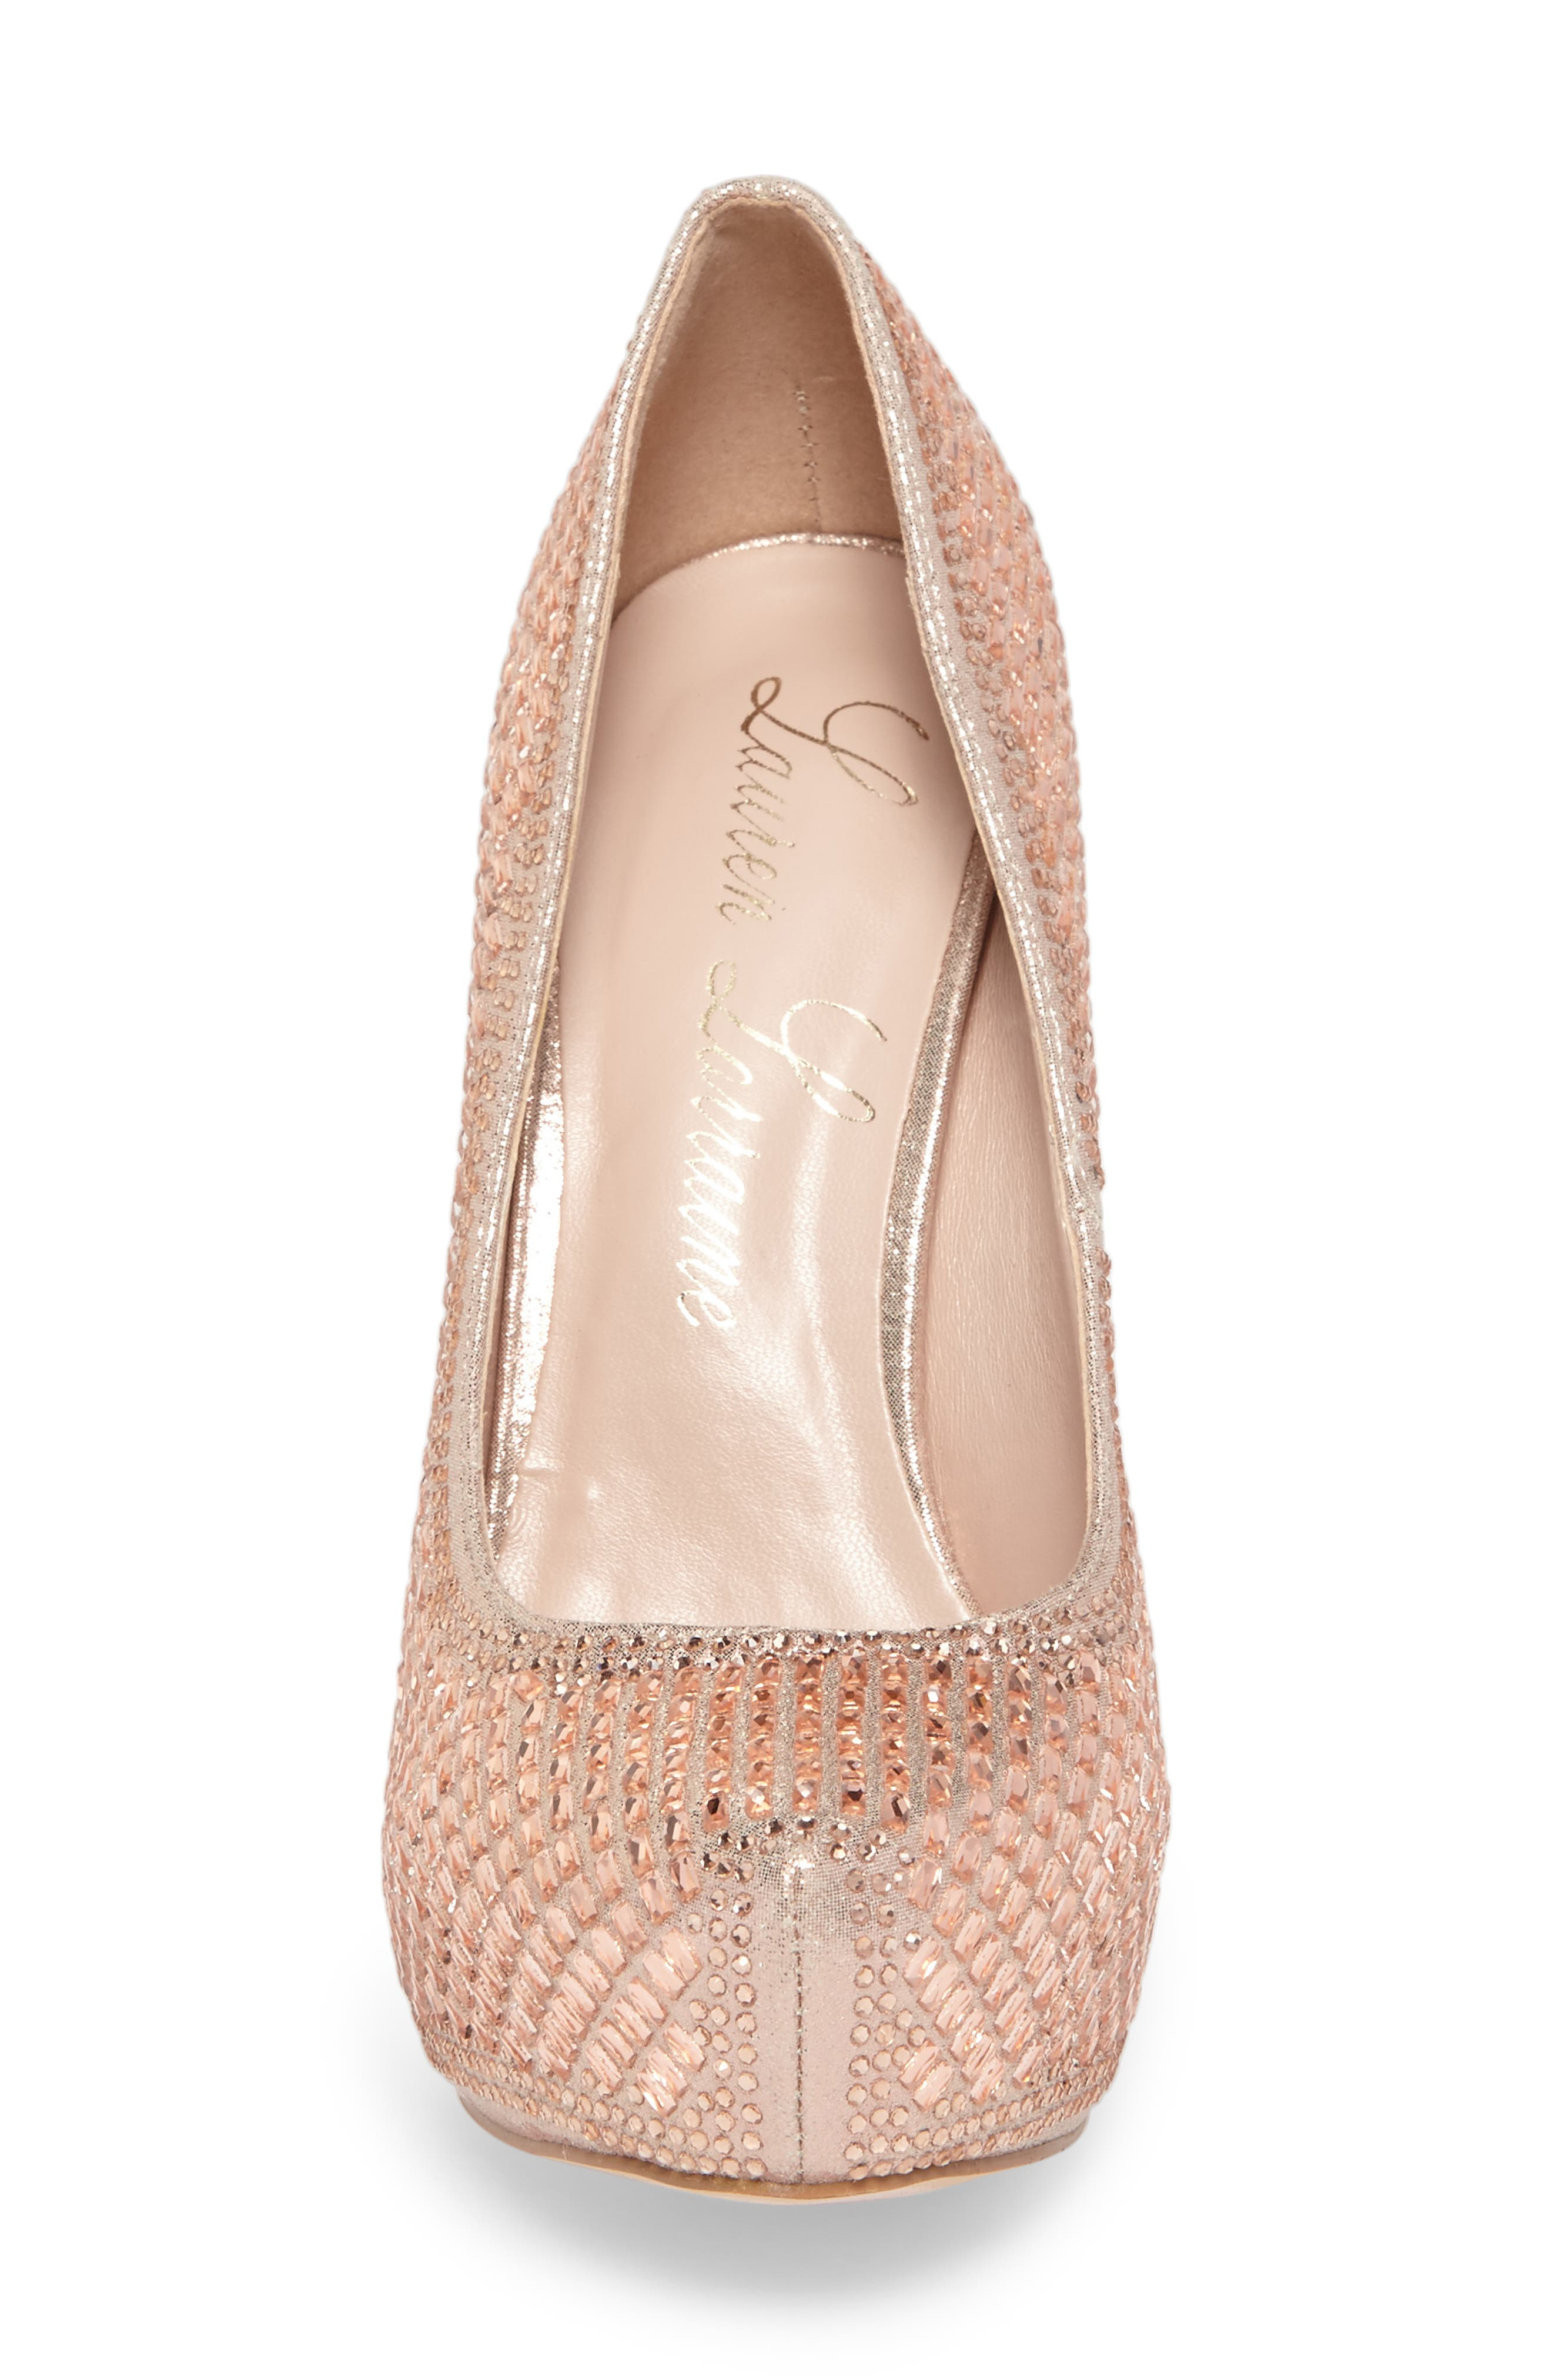 Vanna 5 Platform Pump,                             Alternate thumbnail 4, color,                             ROSE GOLD